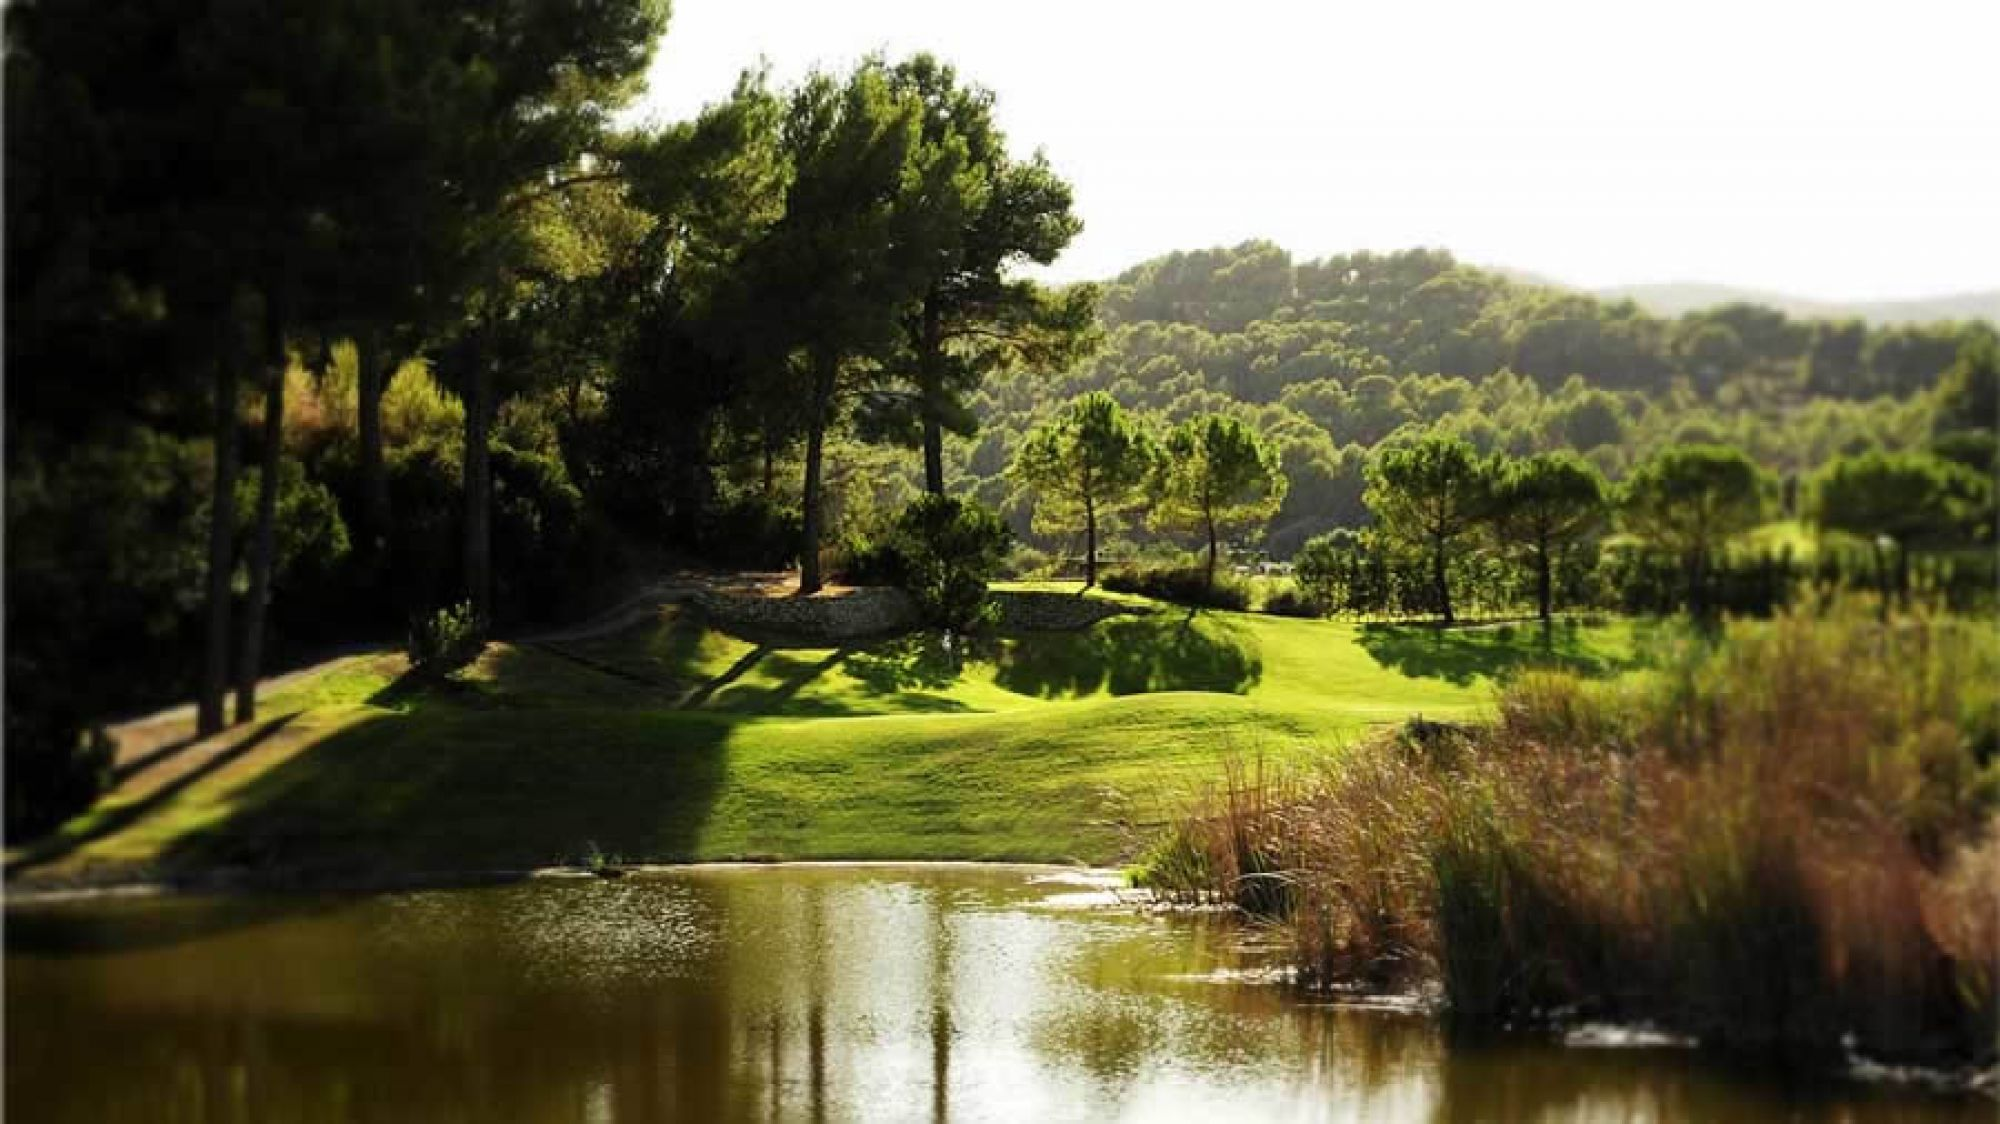 Son Muntaner Golf Course - Arabella Golf features some of the preferred golf course near Mallorca